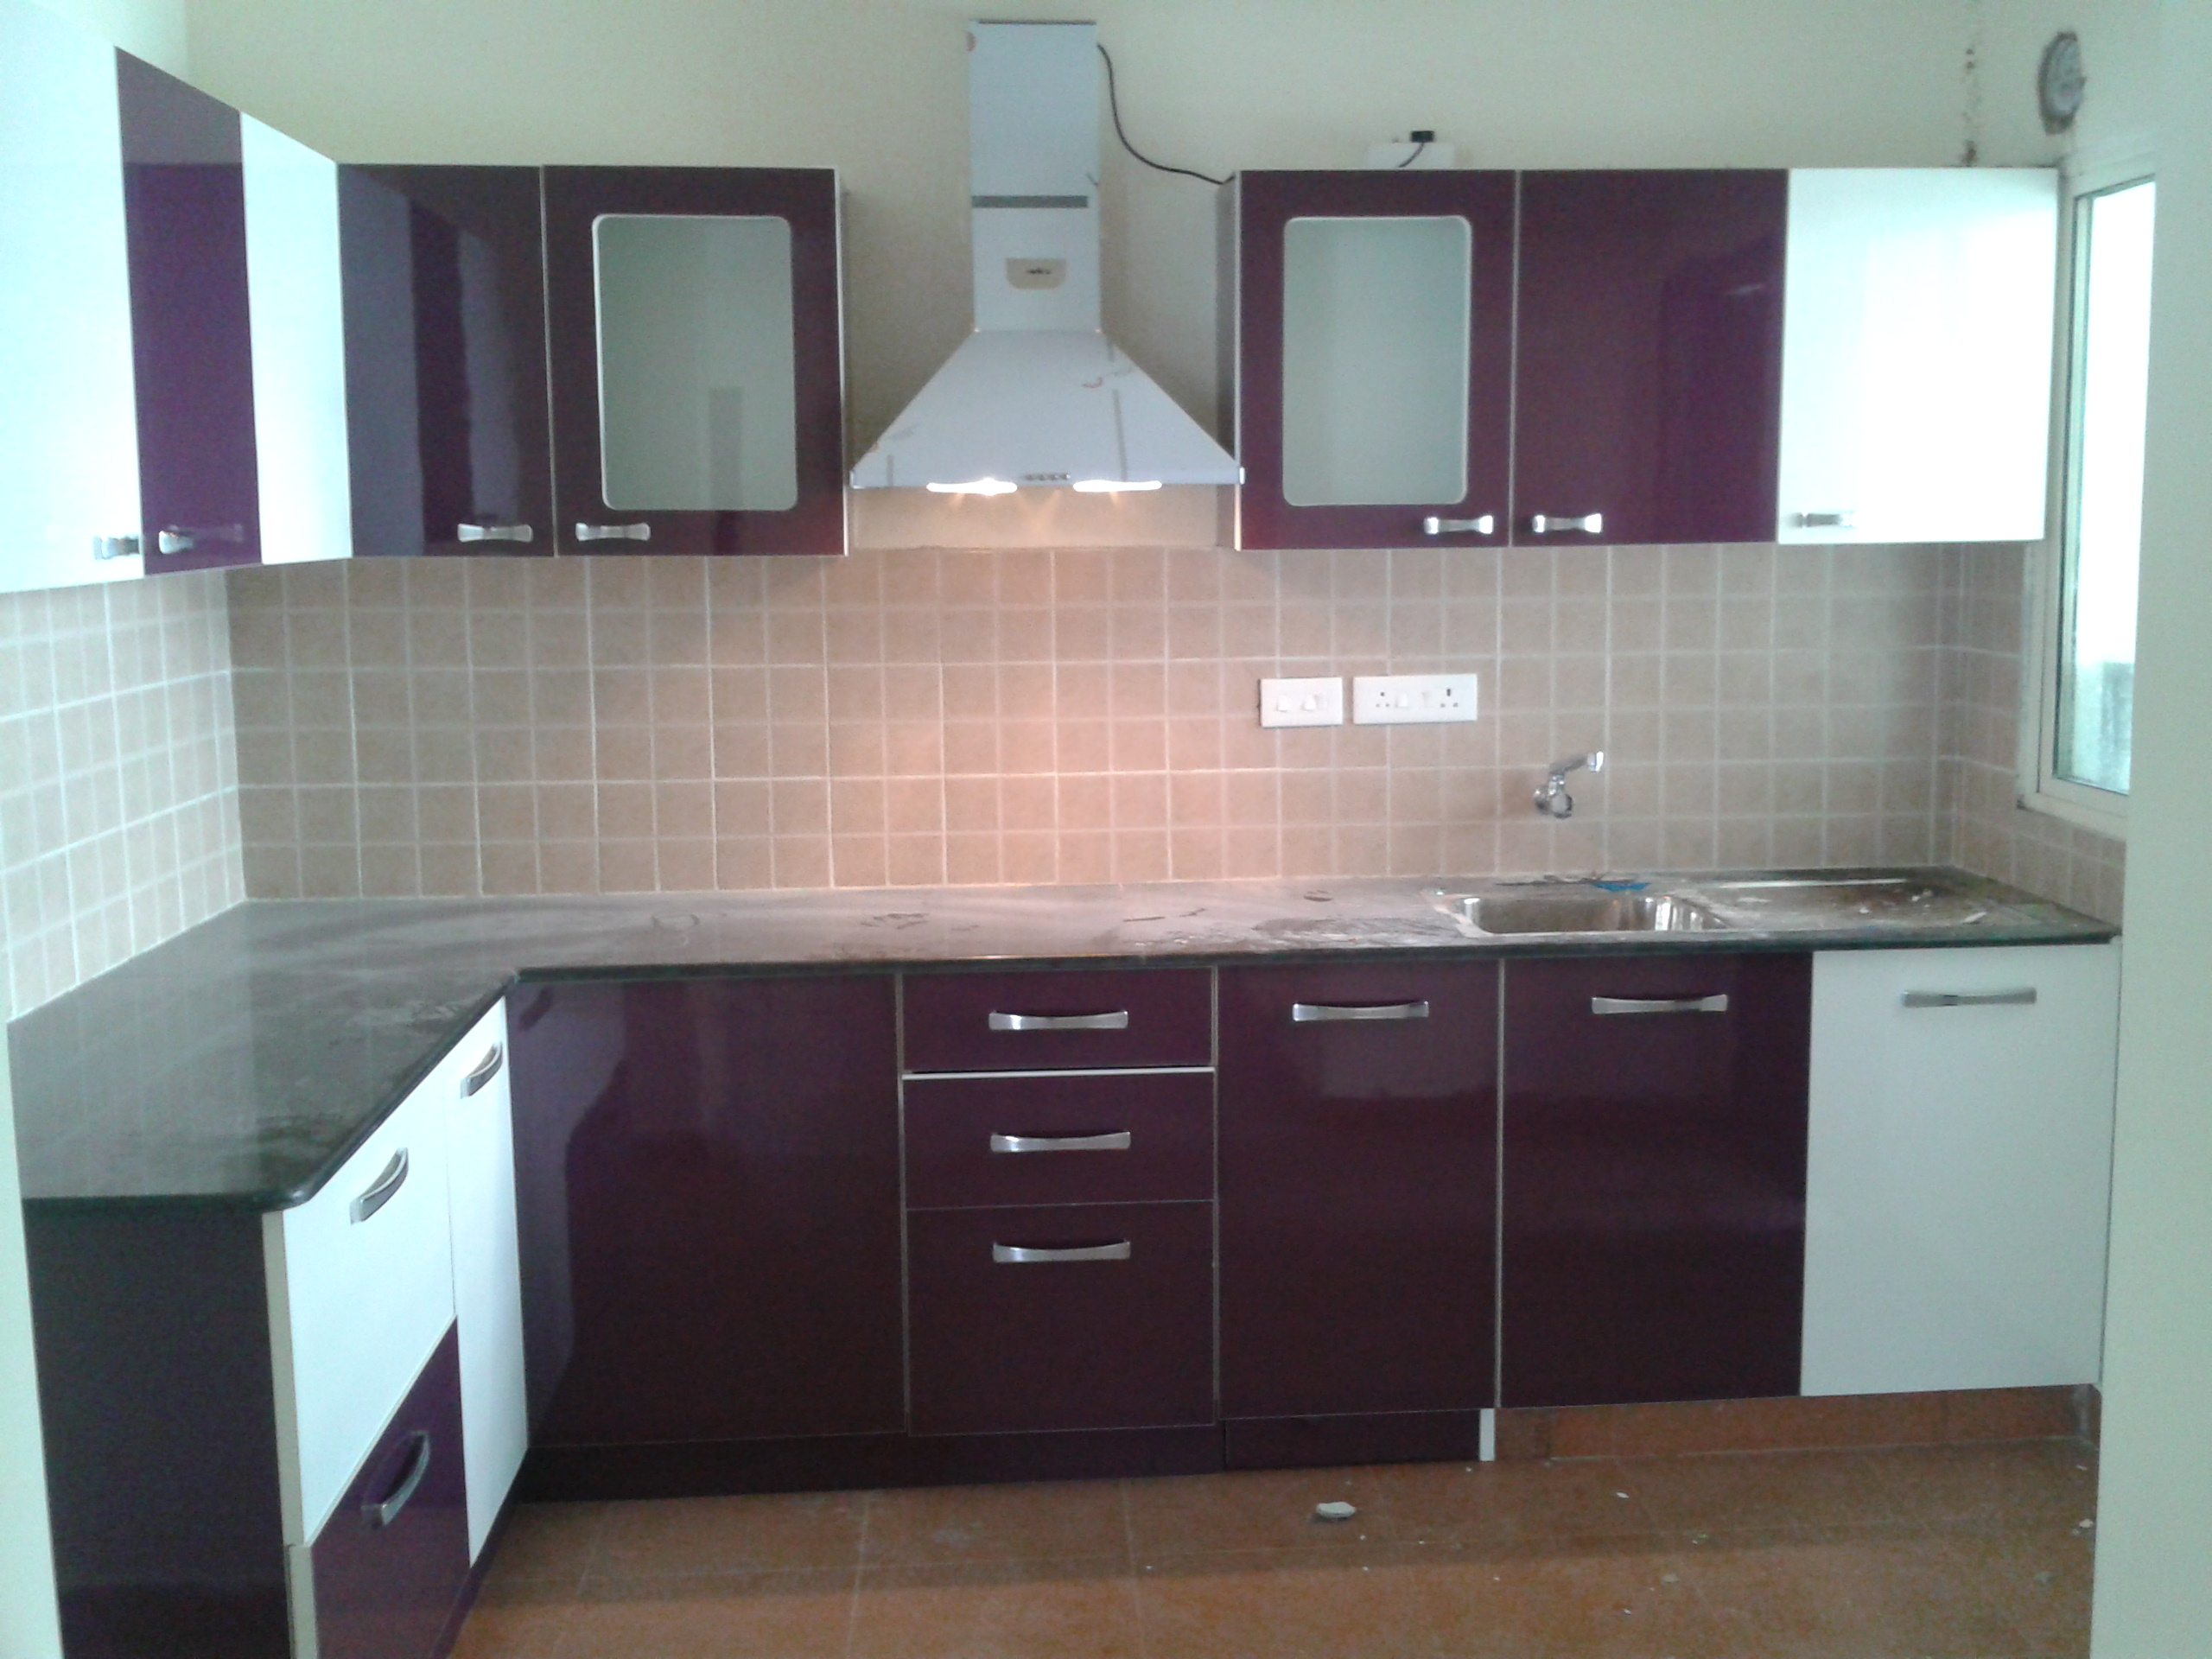 MODULAR KITCHEN - BANGALORE Review, MODULAR KITCHEN - BANGALORE